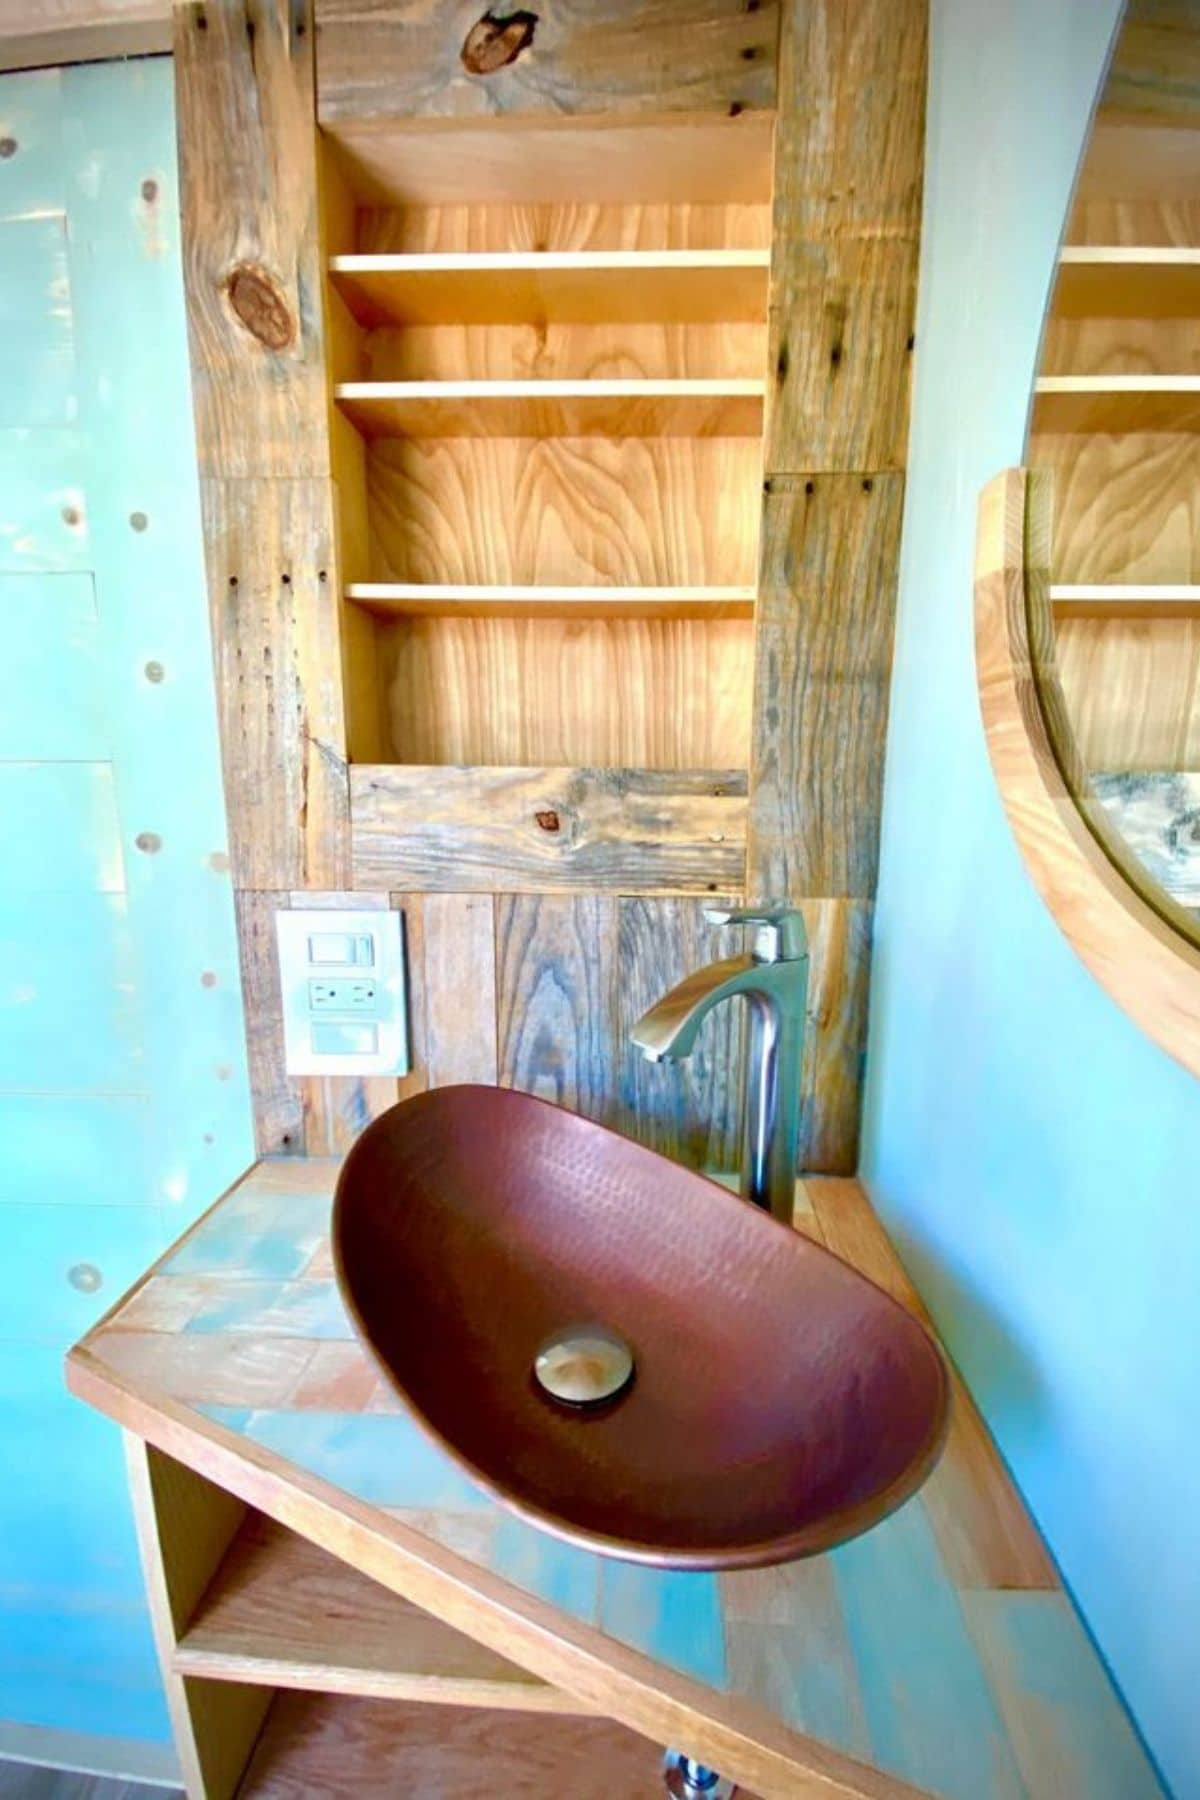 brass sink on reclaimed wood counter with teal walls